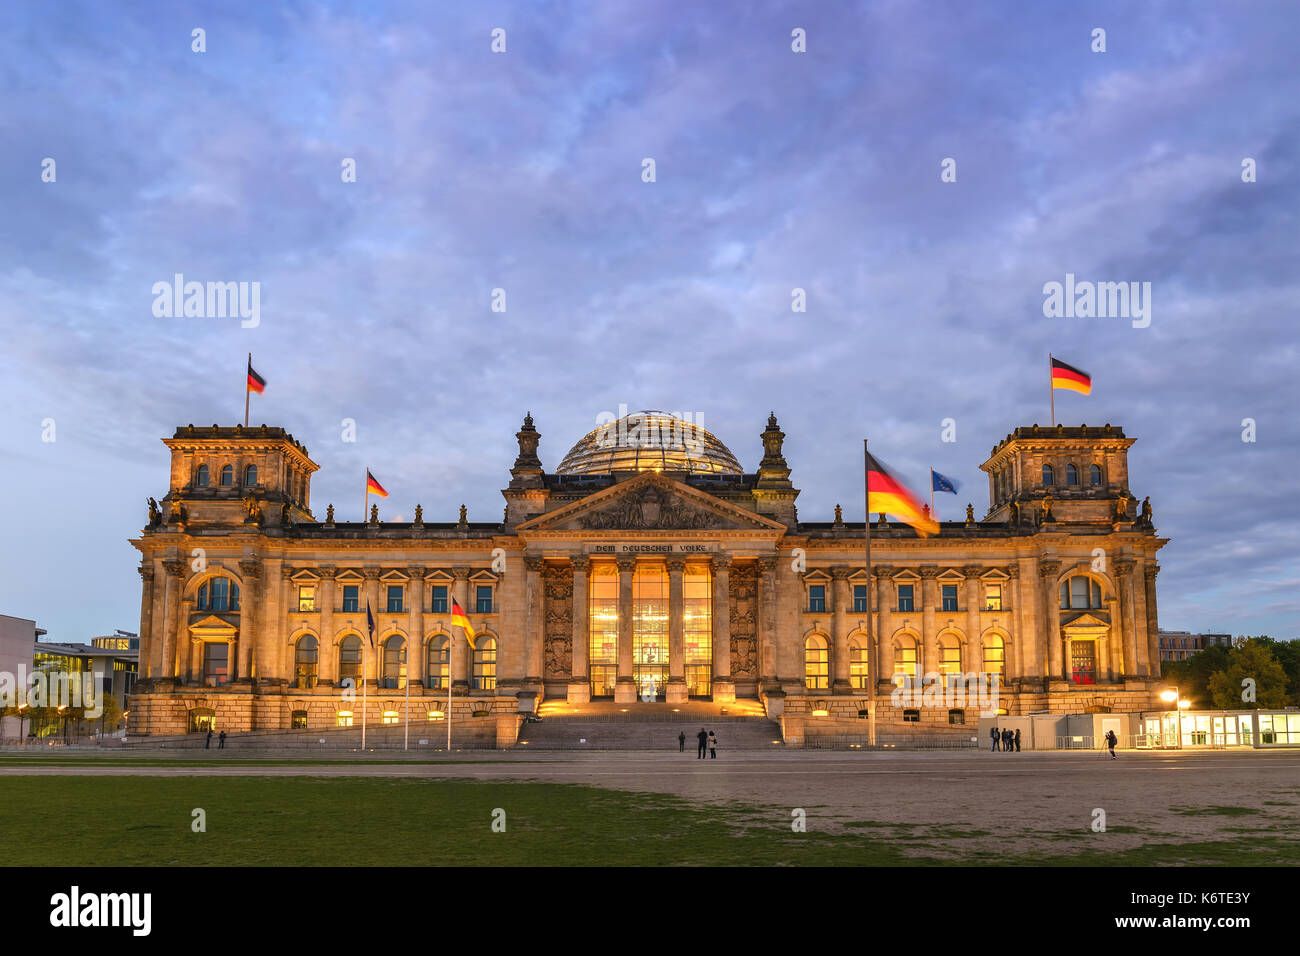 Berlin night city skyline at Reichstag (Bundestag), Berlin, Germany - Stock Image